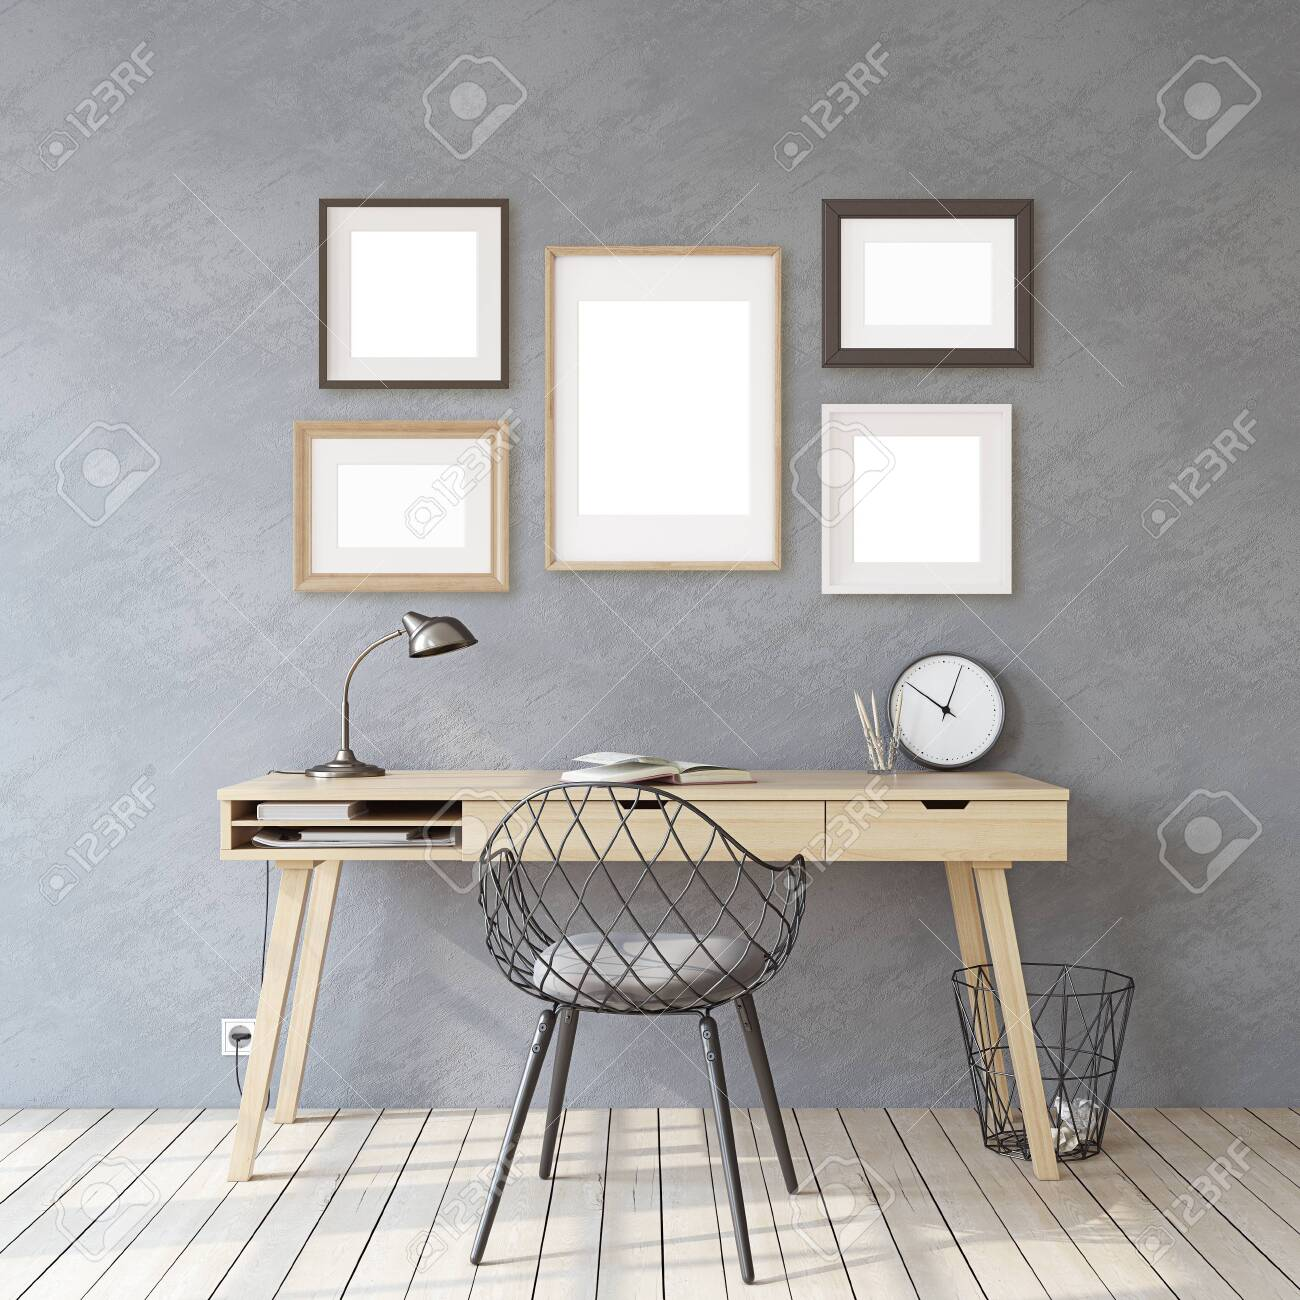 Home office. Interior and frame mockup. Wooden desk near gray wall. Different types of frames on the gray wall. 3d render. - 121679392